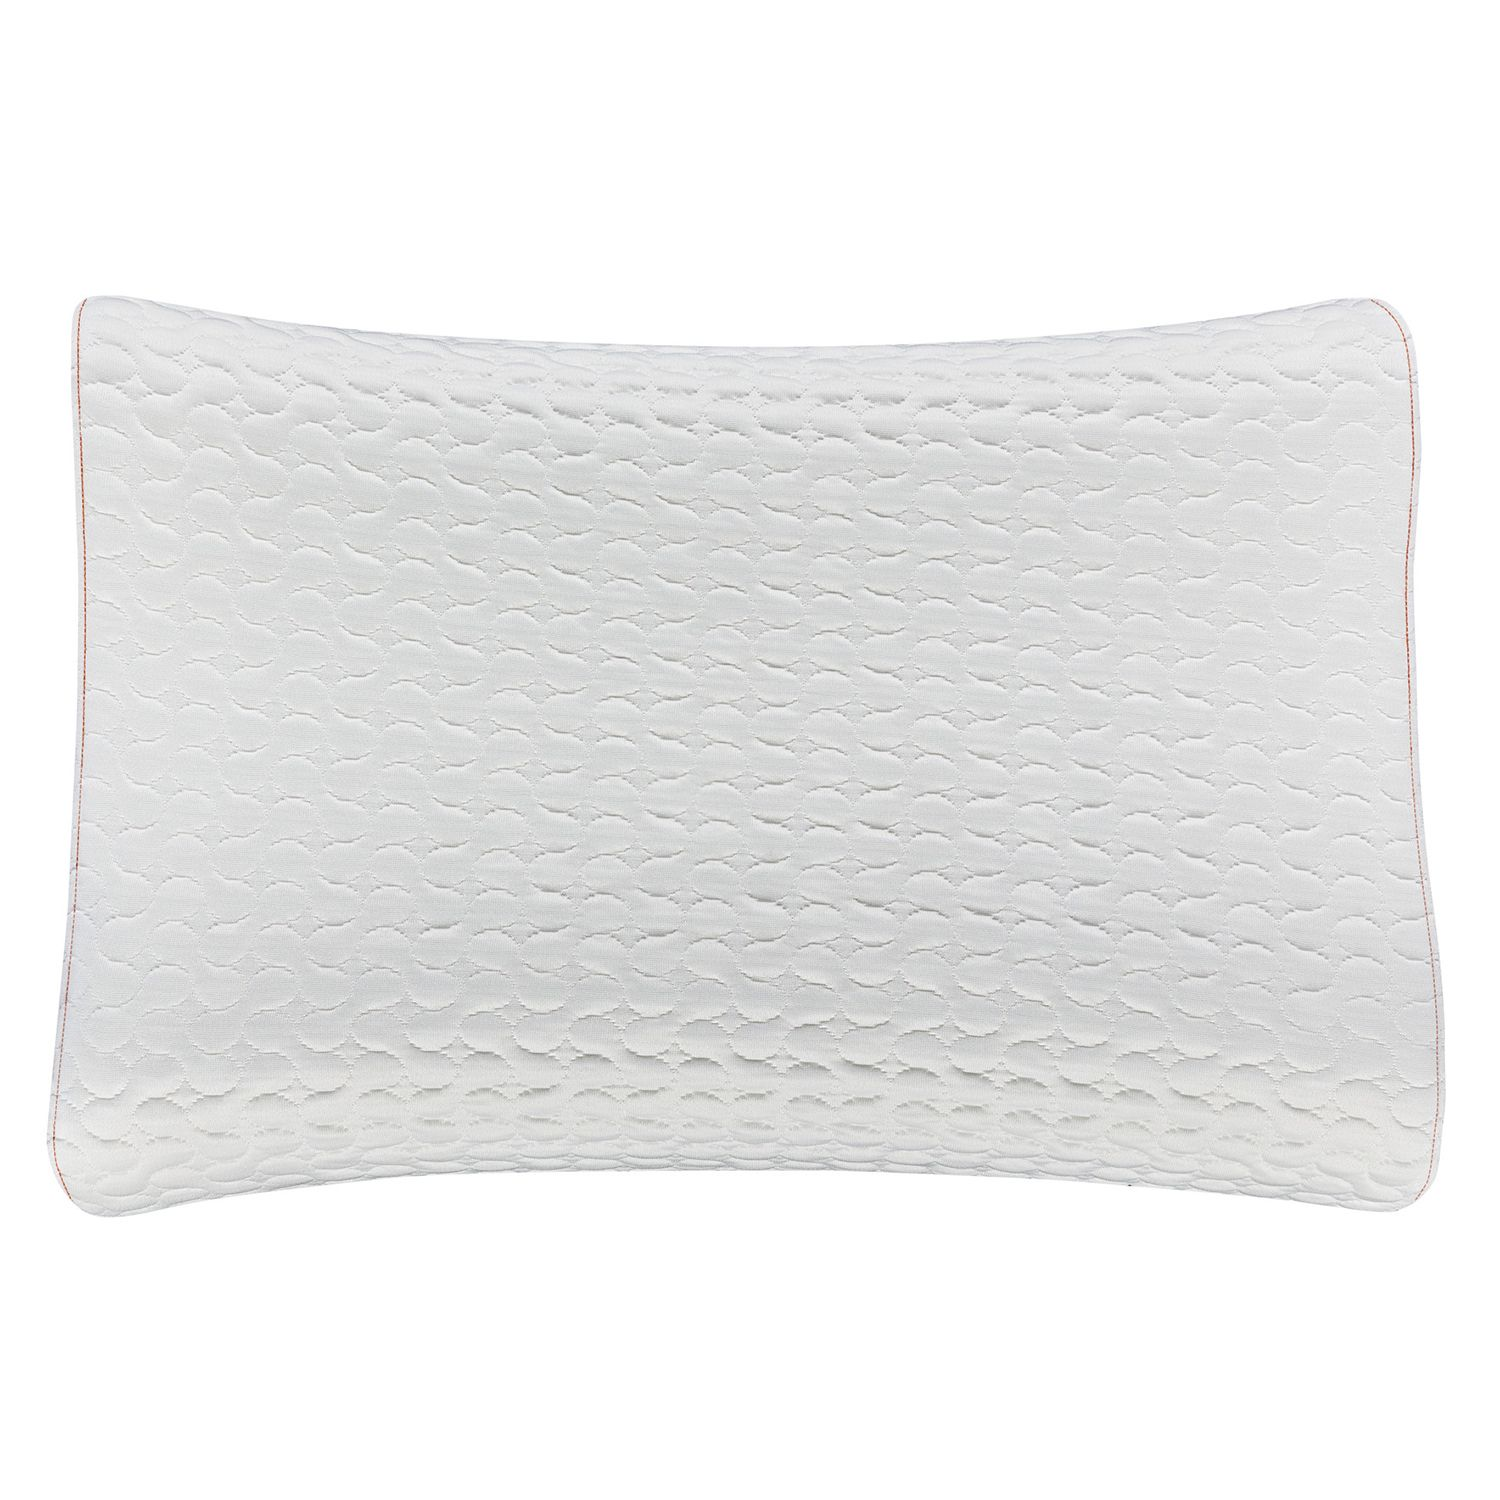 tempurpedic side sleeper support pillow